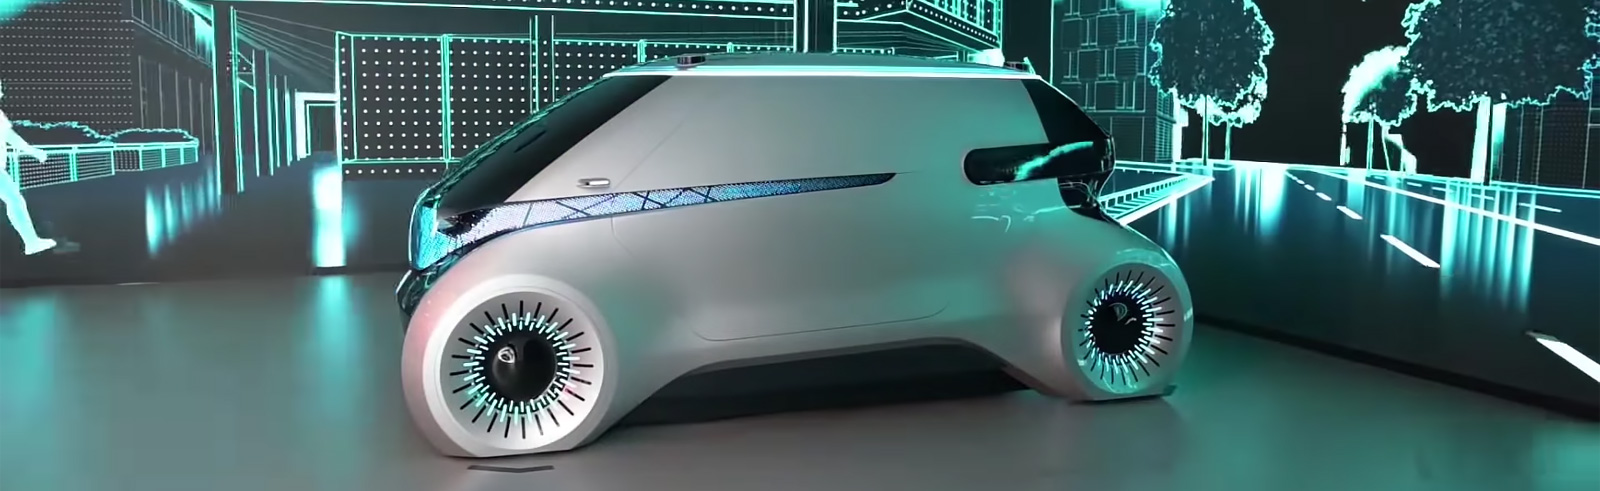 Hyundai aims at launching a fully autonomous vehicle in 5 years